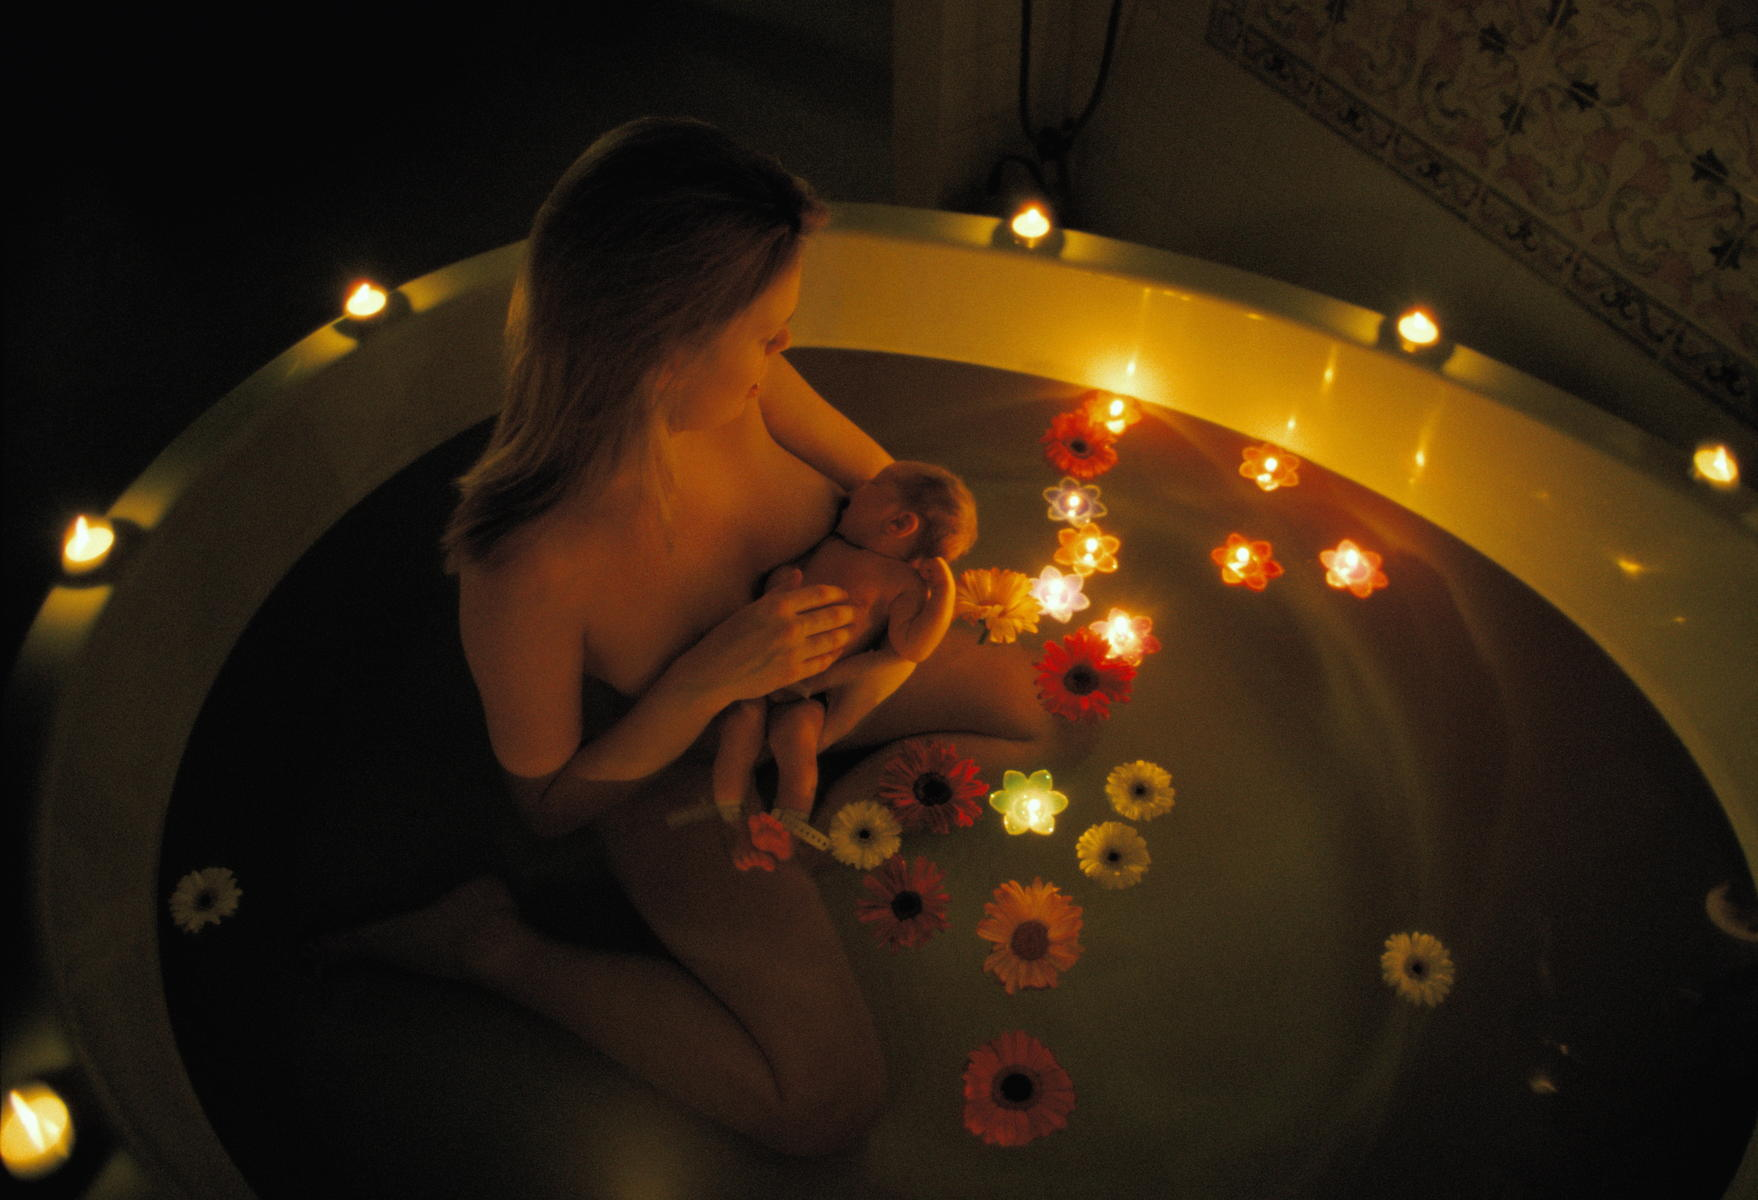 Mother breastfeeding newborn baby girl in candlelit bath with flowers